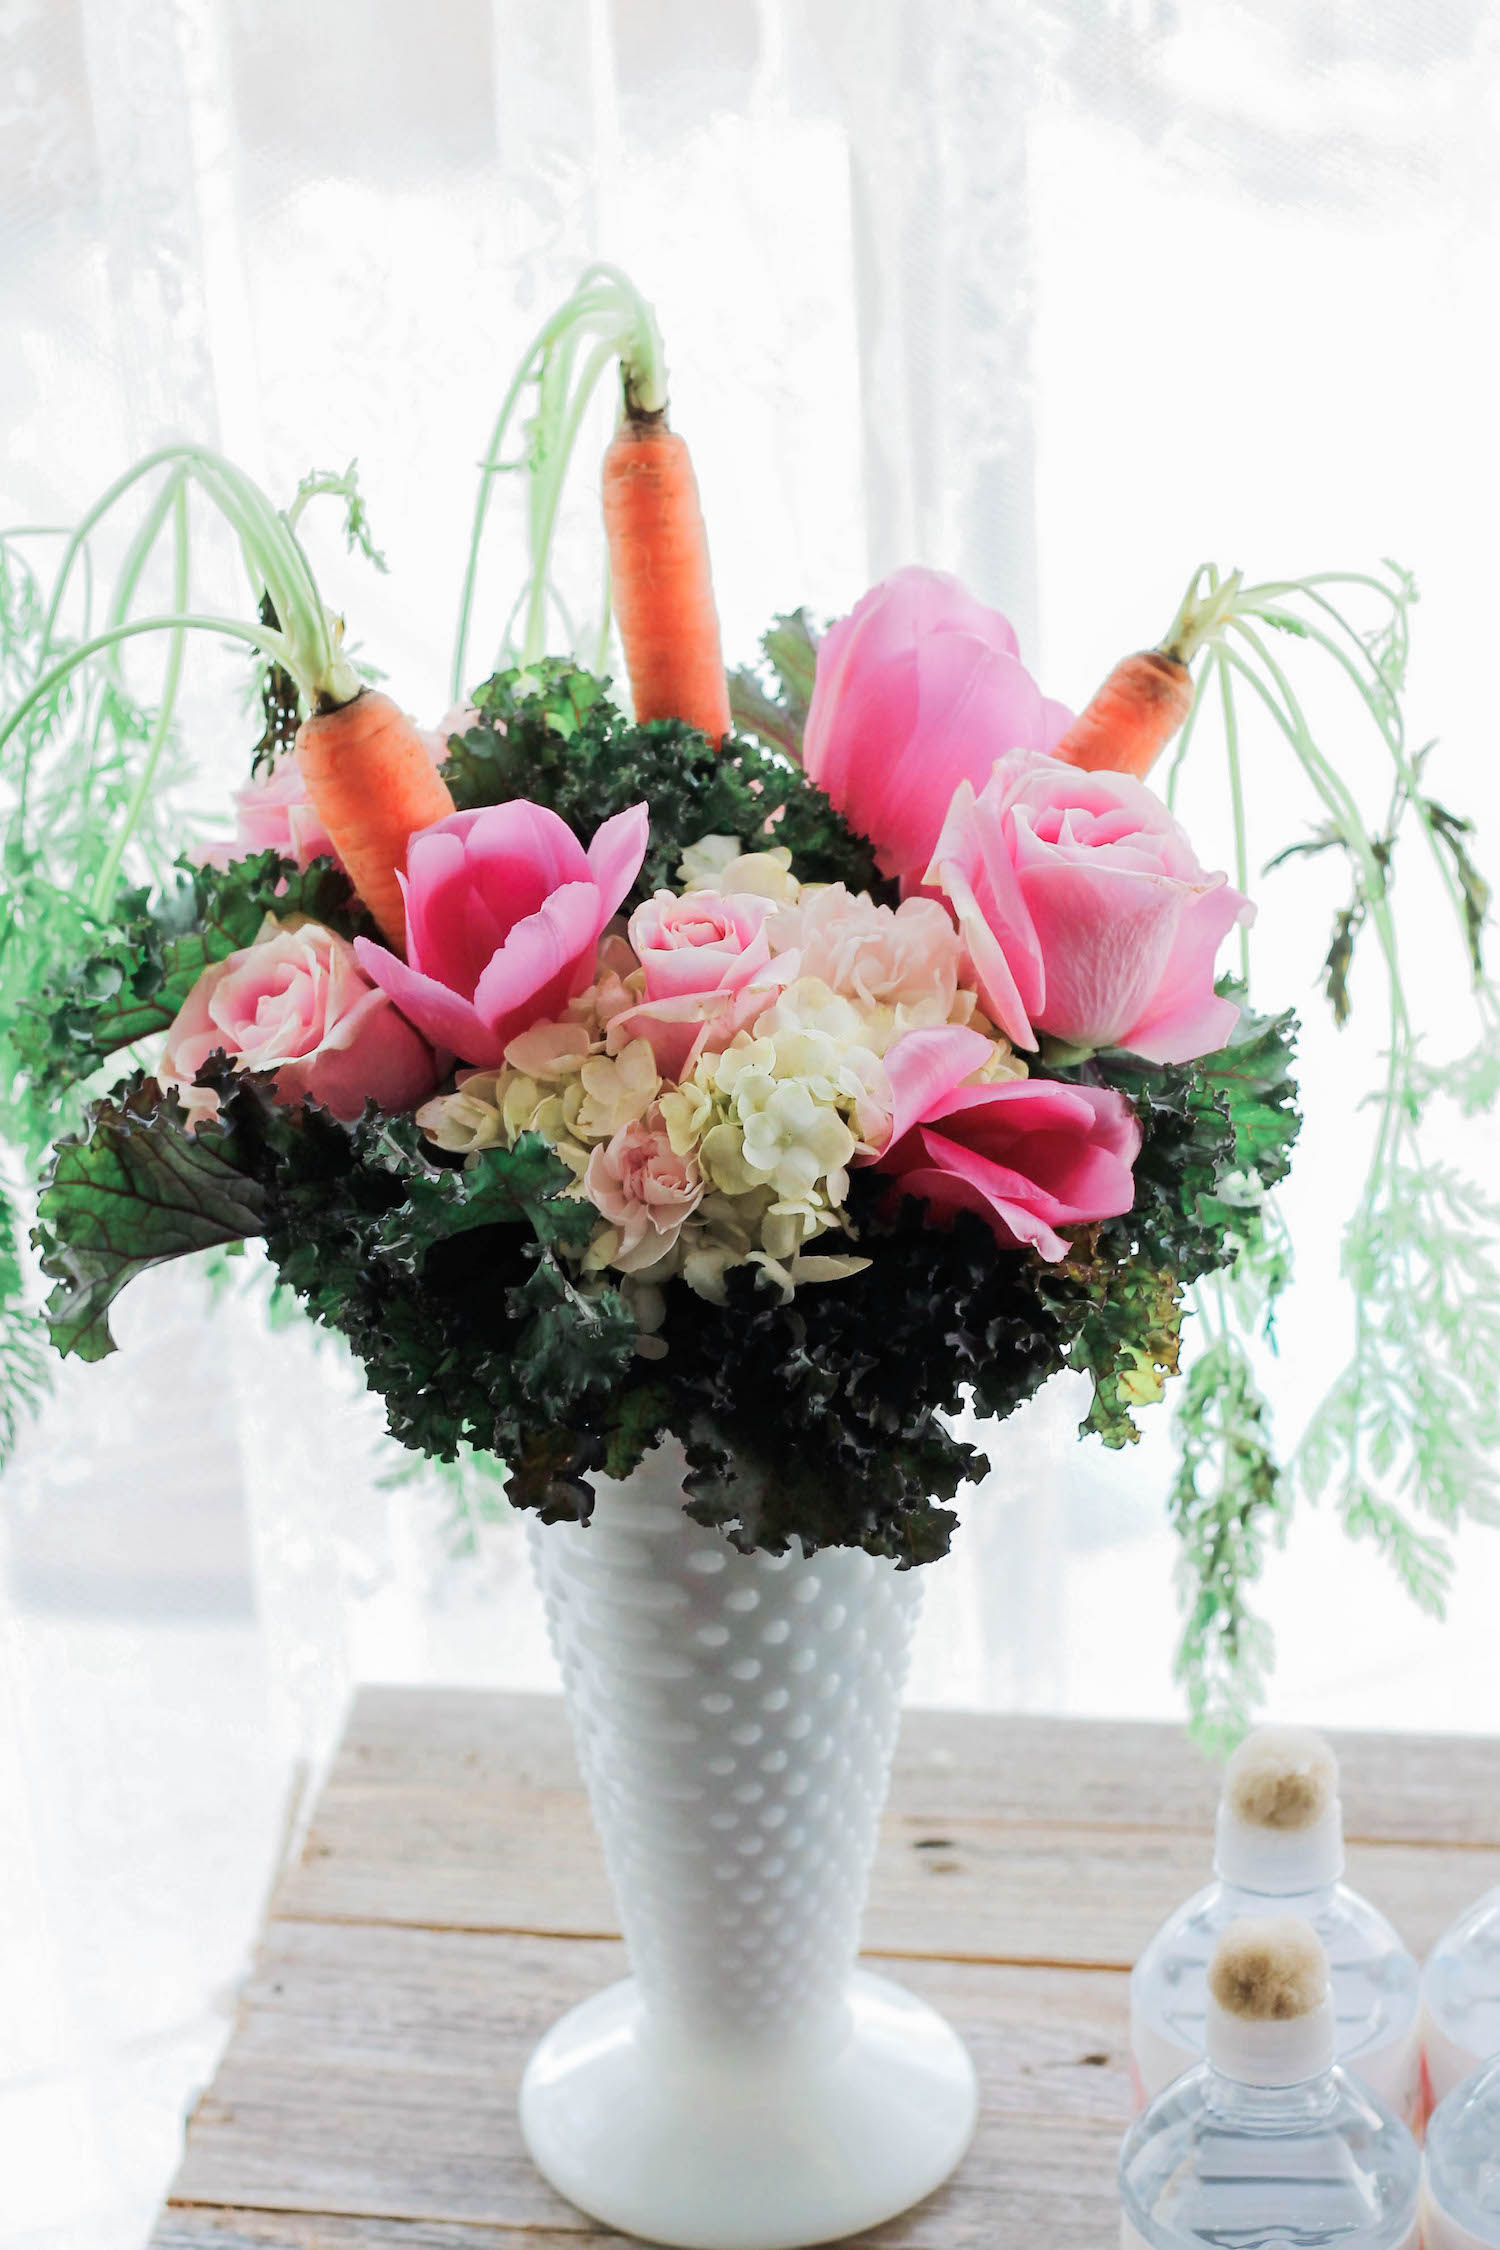 Organic Floral Arrangement with Carrots, Roses, Hydrangeas, and Kale — Some Bunny Spring Birthday Party — Pretty Easter Flowers . . . click to see more on www.GiggleHearts.com